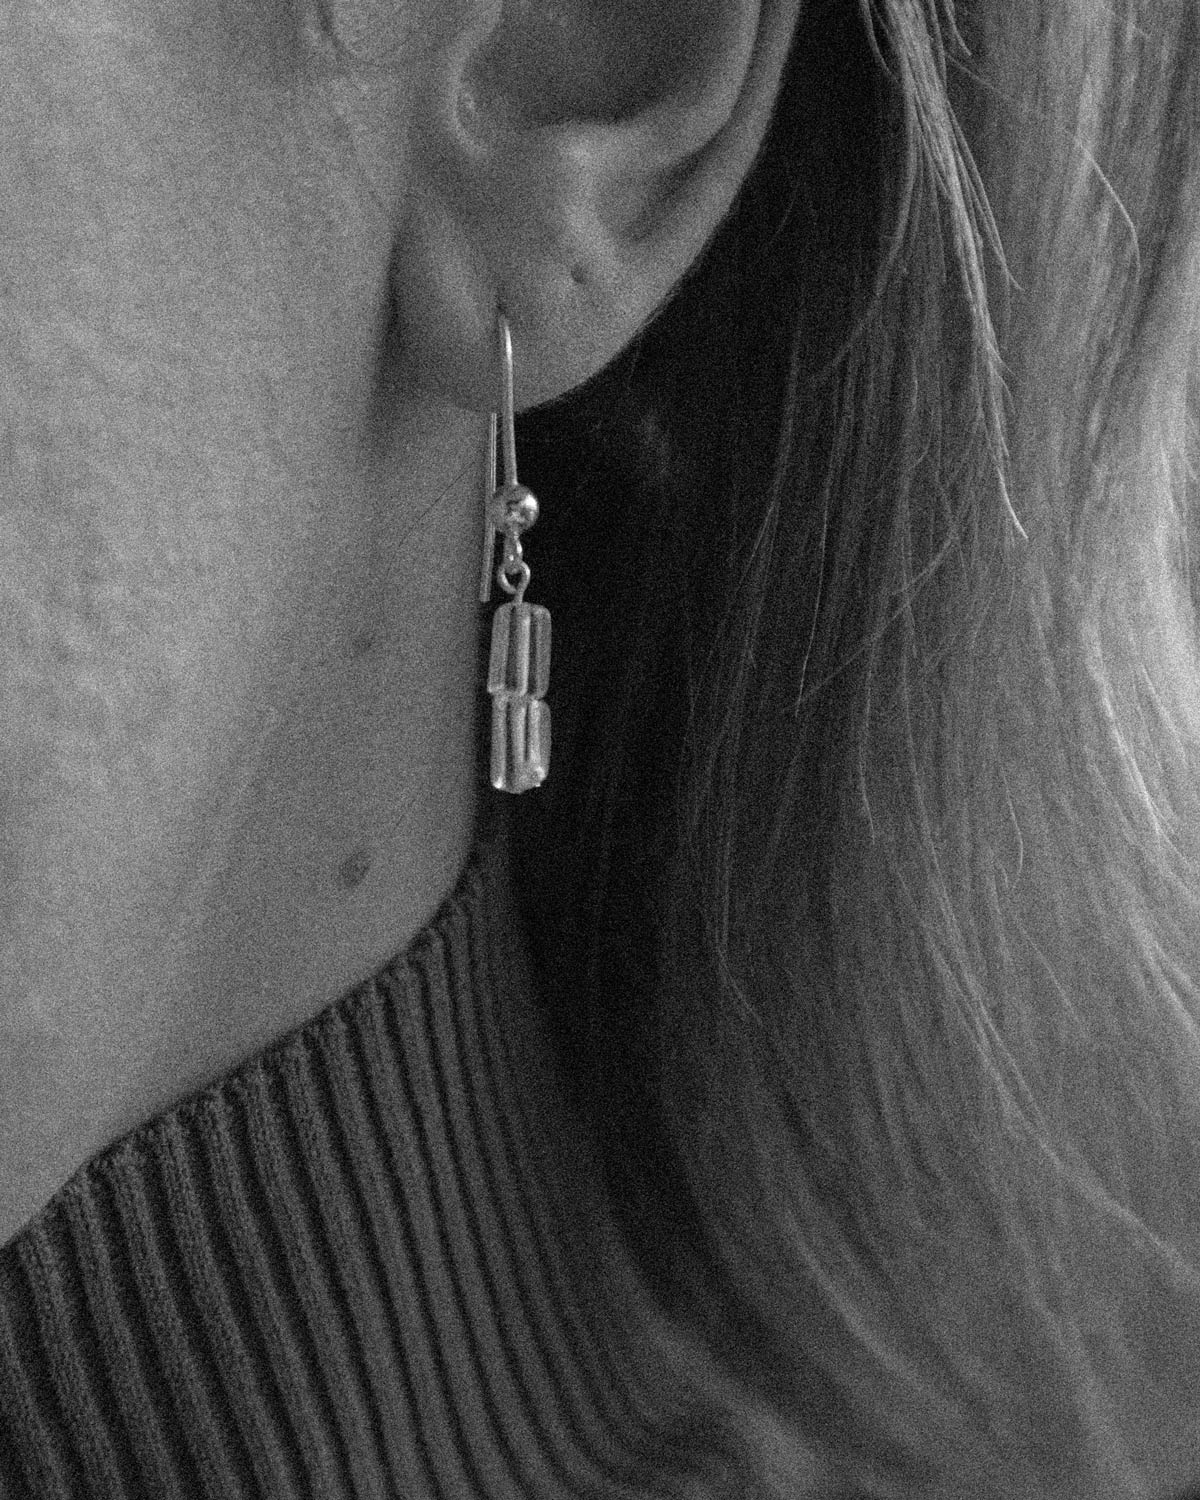 feminine earring handmade for gifting